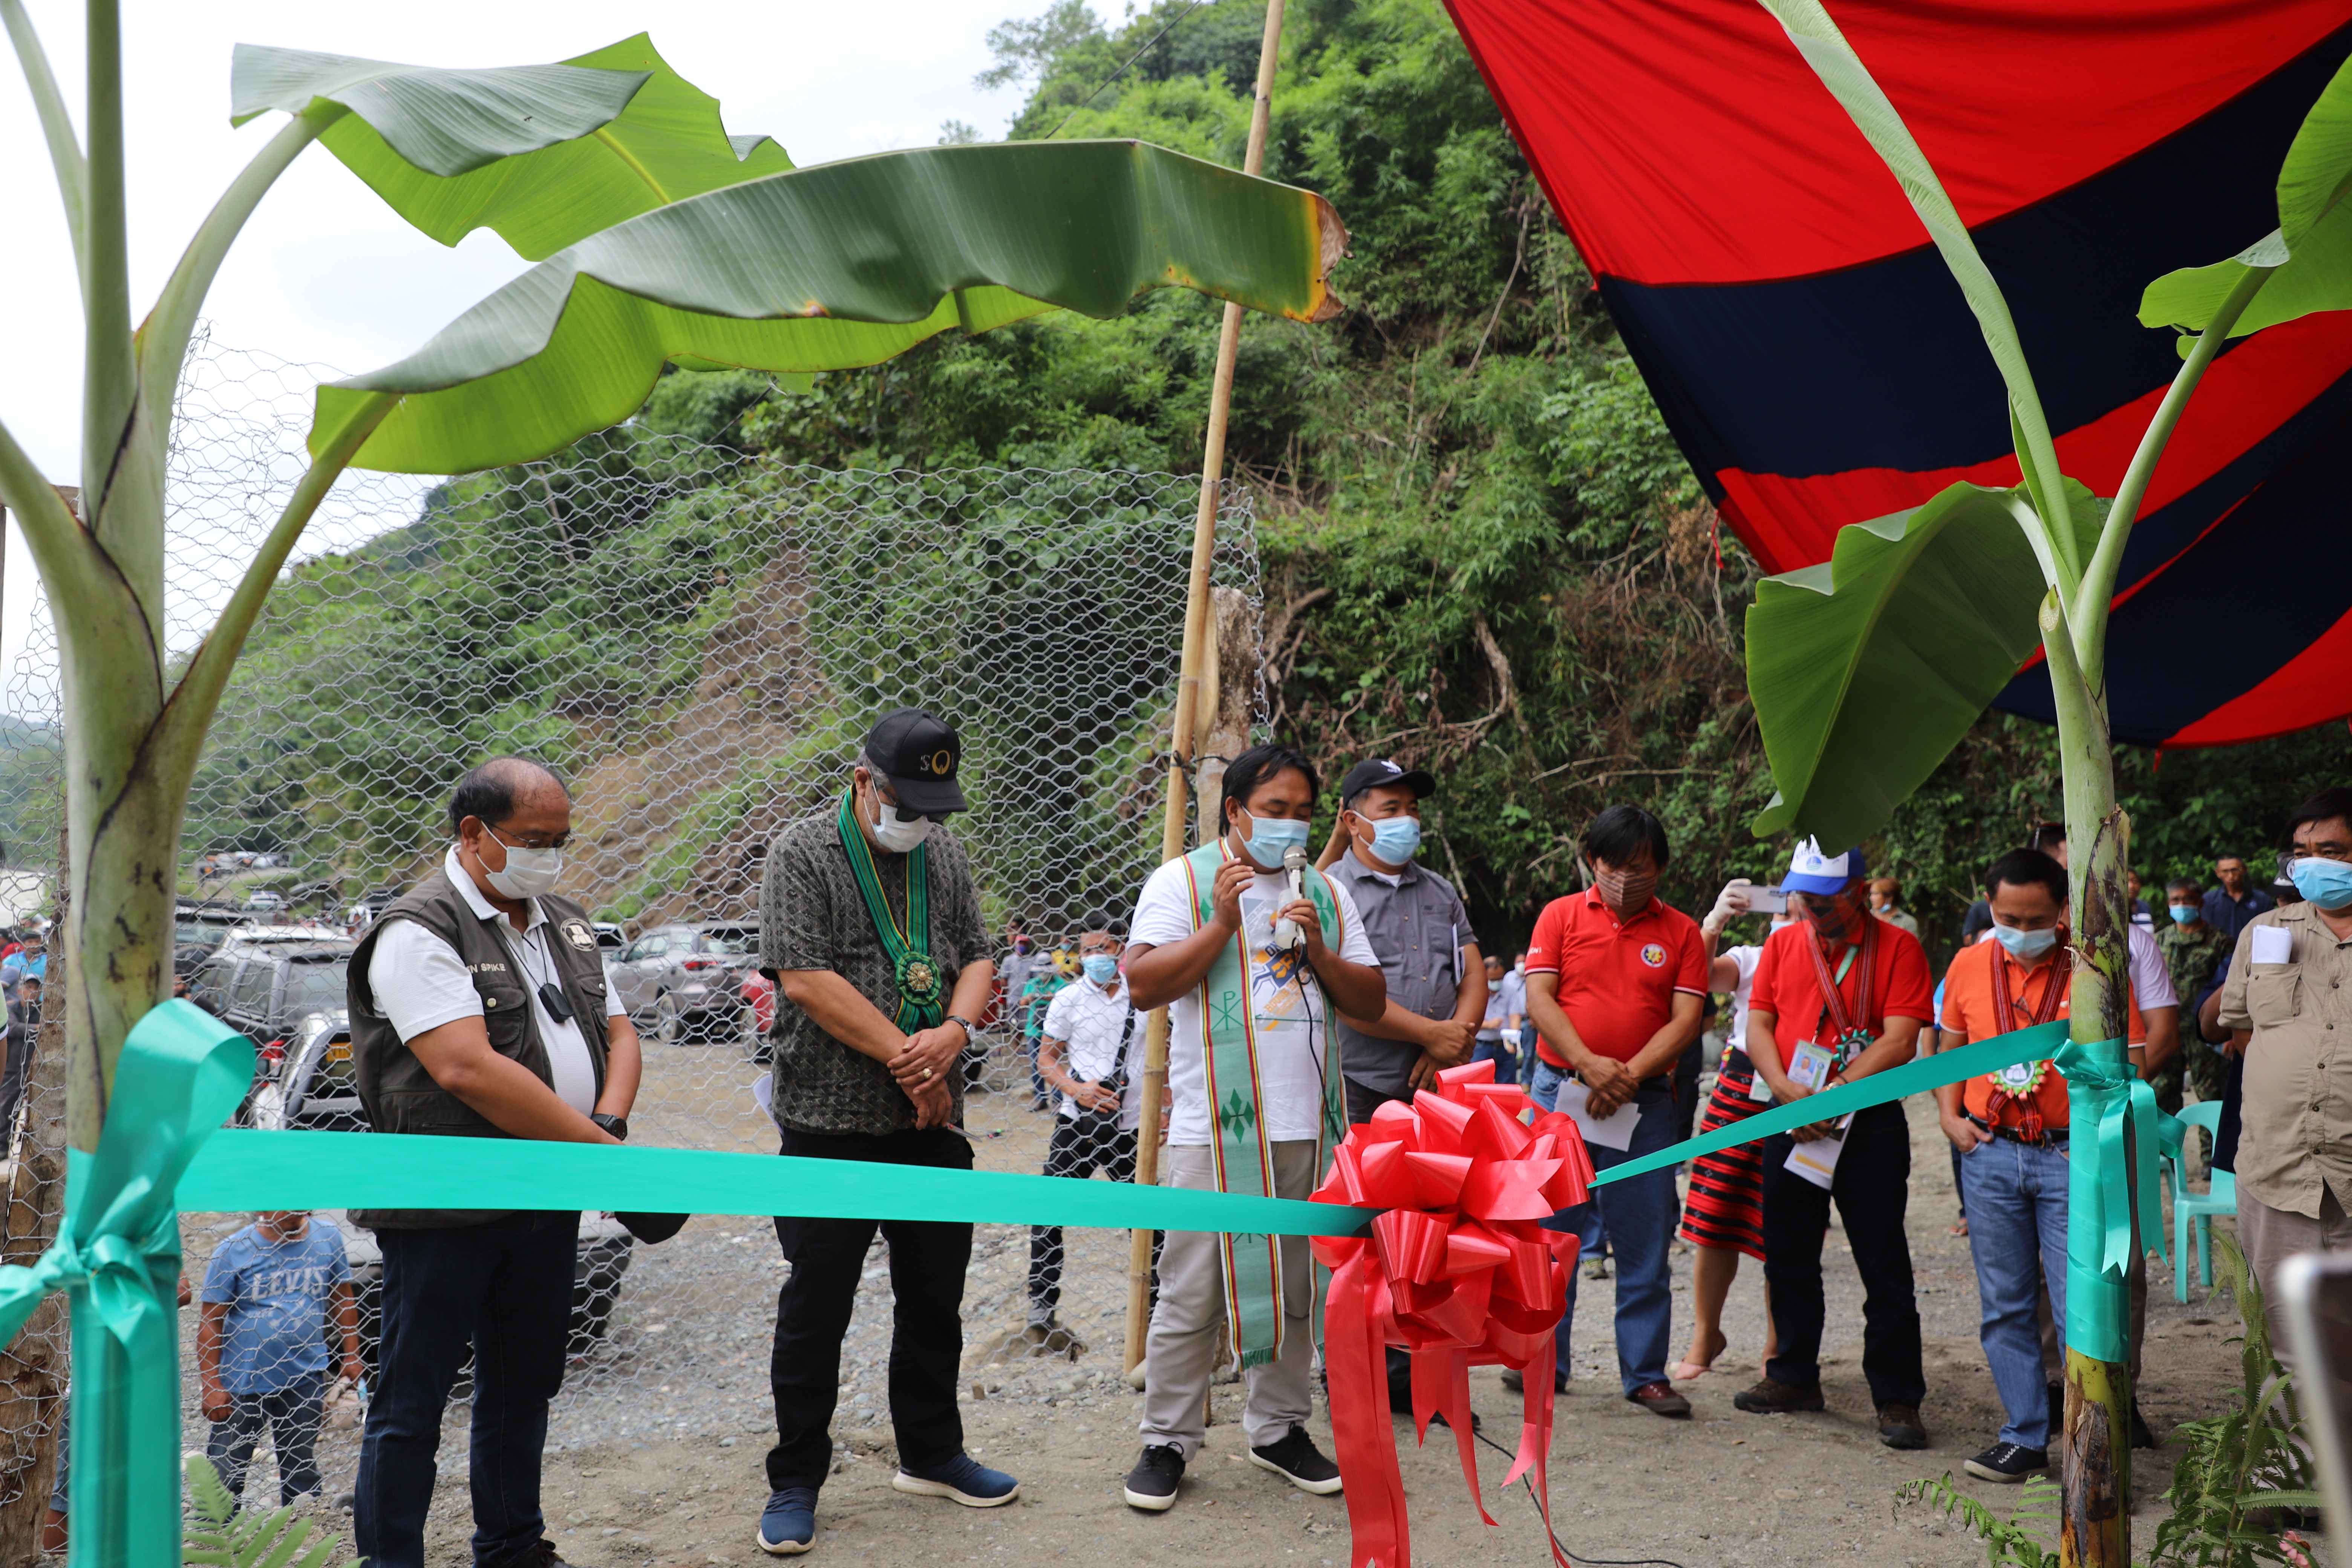 Inauguration of the newly completed diversion dam of the Hapid Irrigation System in Lamut, Ifugao on October 1, 2020 is led by Hon. Solomon Chungalao, Representative of the Lone District of Ifugao, Governor Jerry Dalipog, NIA-CAR Regional Manager Benito Espique, Jr., and NIA Ifugao Satellite Office Head Patrick Resurreccion witnessed by other local officials, regional heads of other agencies, NIA employees and farmer-beneficiaries.